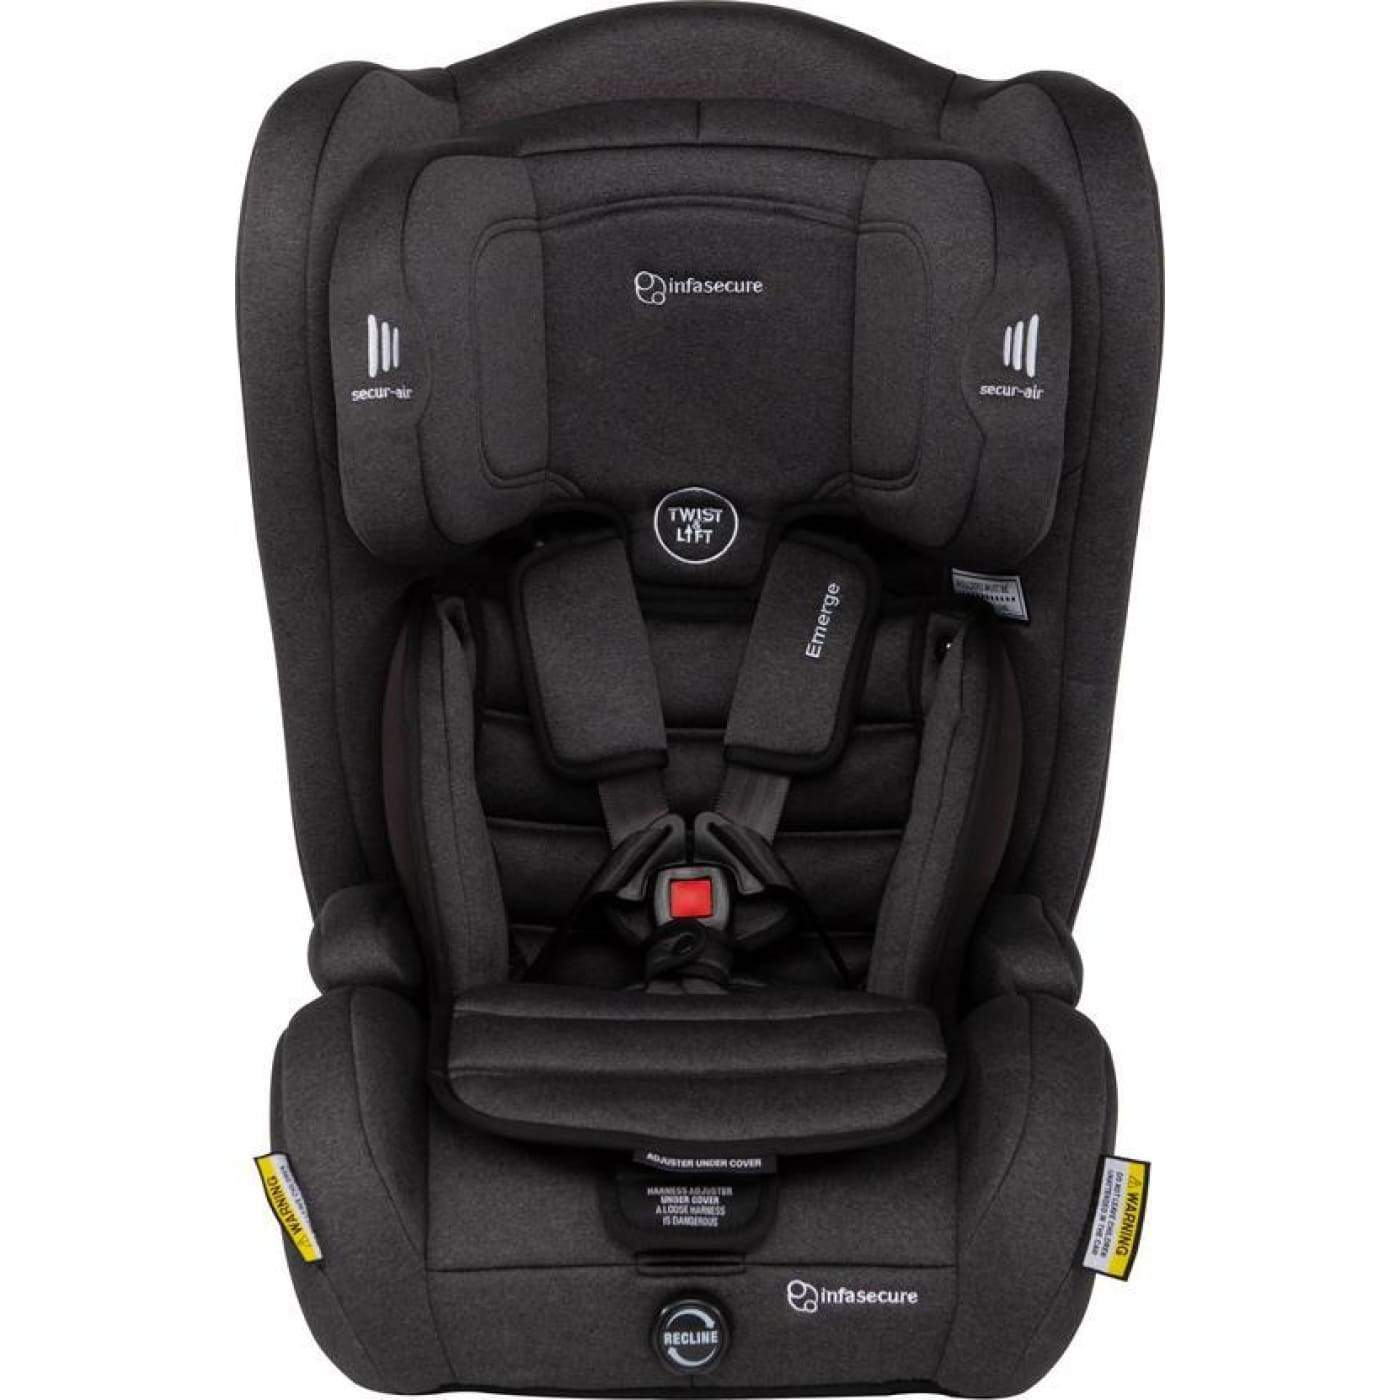 InfaSecure Go Emerge Harnessed Booster 6M-8YR - Black - CAR SEATS - HARNESSED BOOSTERS (6M-8YR)